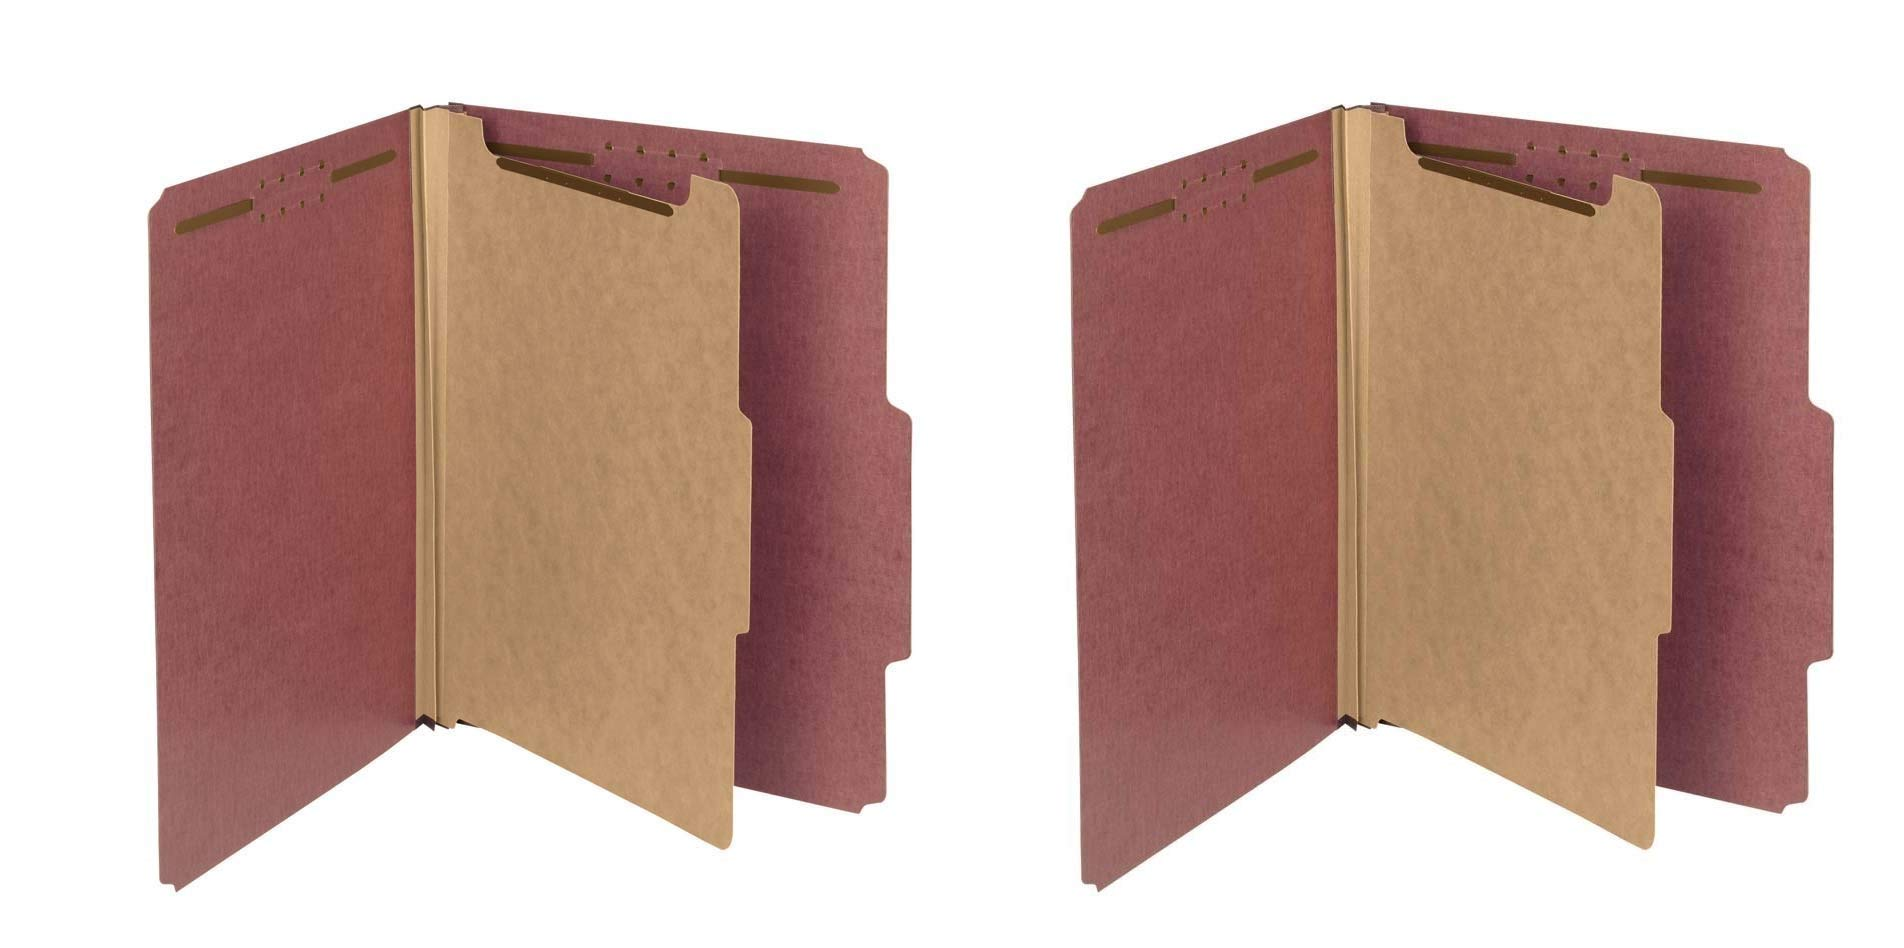 Smead 100% Recycled Pressboard Classification File Folder, 1 Divider, 2'' Expansion, Letter Size, Red, 10 per Box (13724) (2 X 10 per Box)